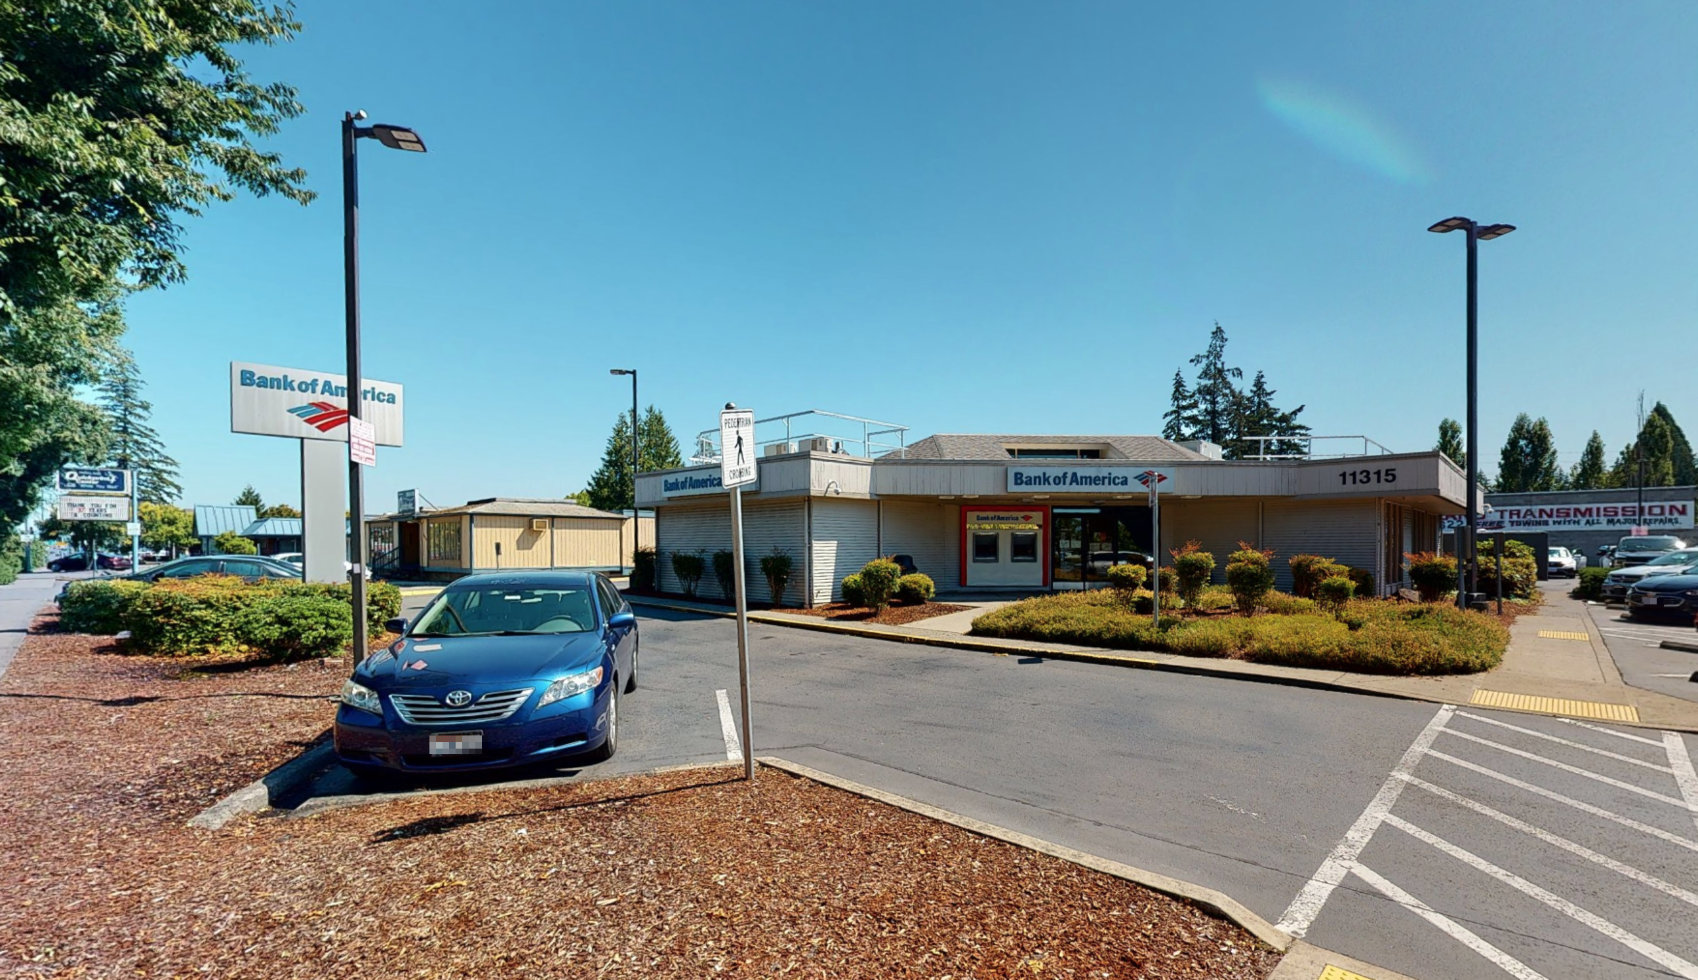 Bank of America financial center with walk-up ATM | 11315 Pacific Ave S, Tacoma, WA 98444